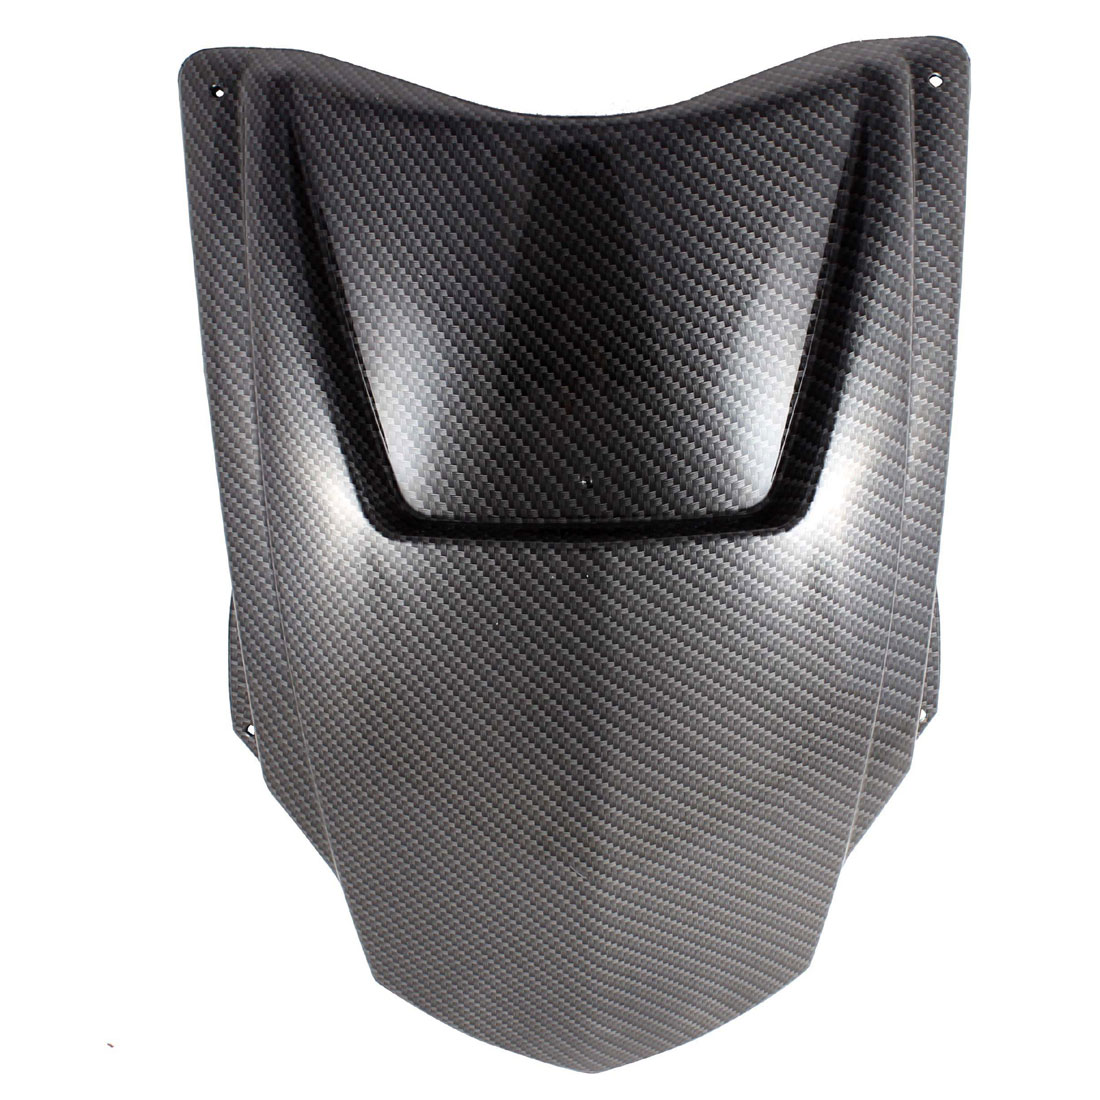 36cm x 30cm ABS Plastic Carbon Fiber Pattern Motorcycle Front Panel Cover for BWS